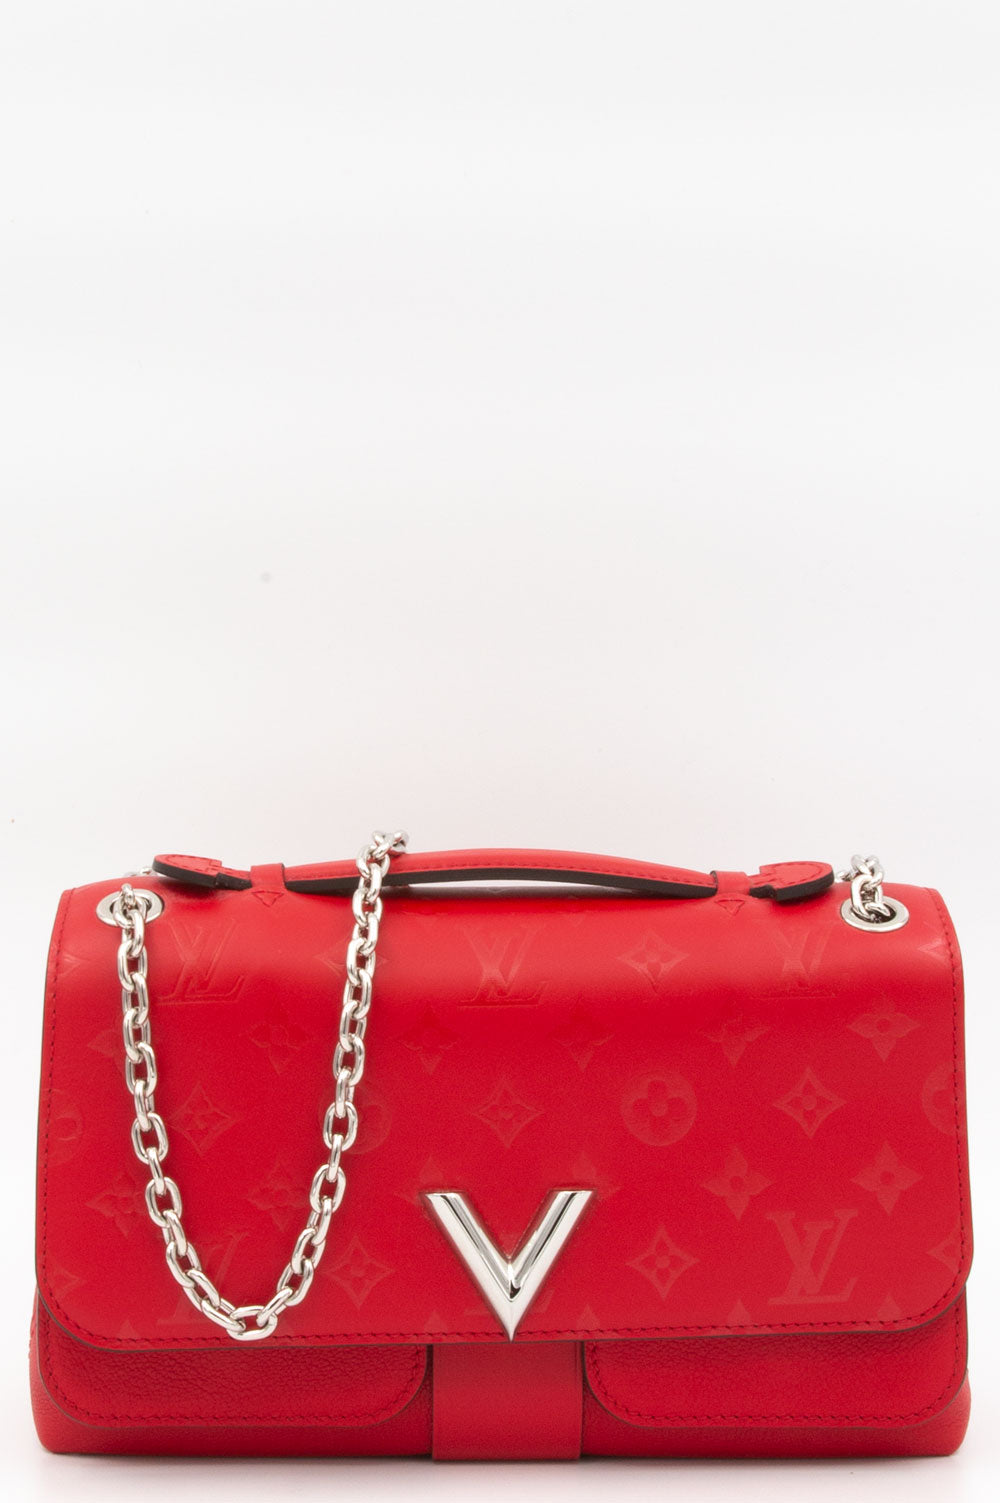 Louis Vuitton Very Chain Bag in der Farbe Rubis.